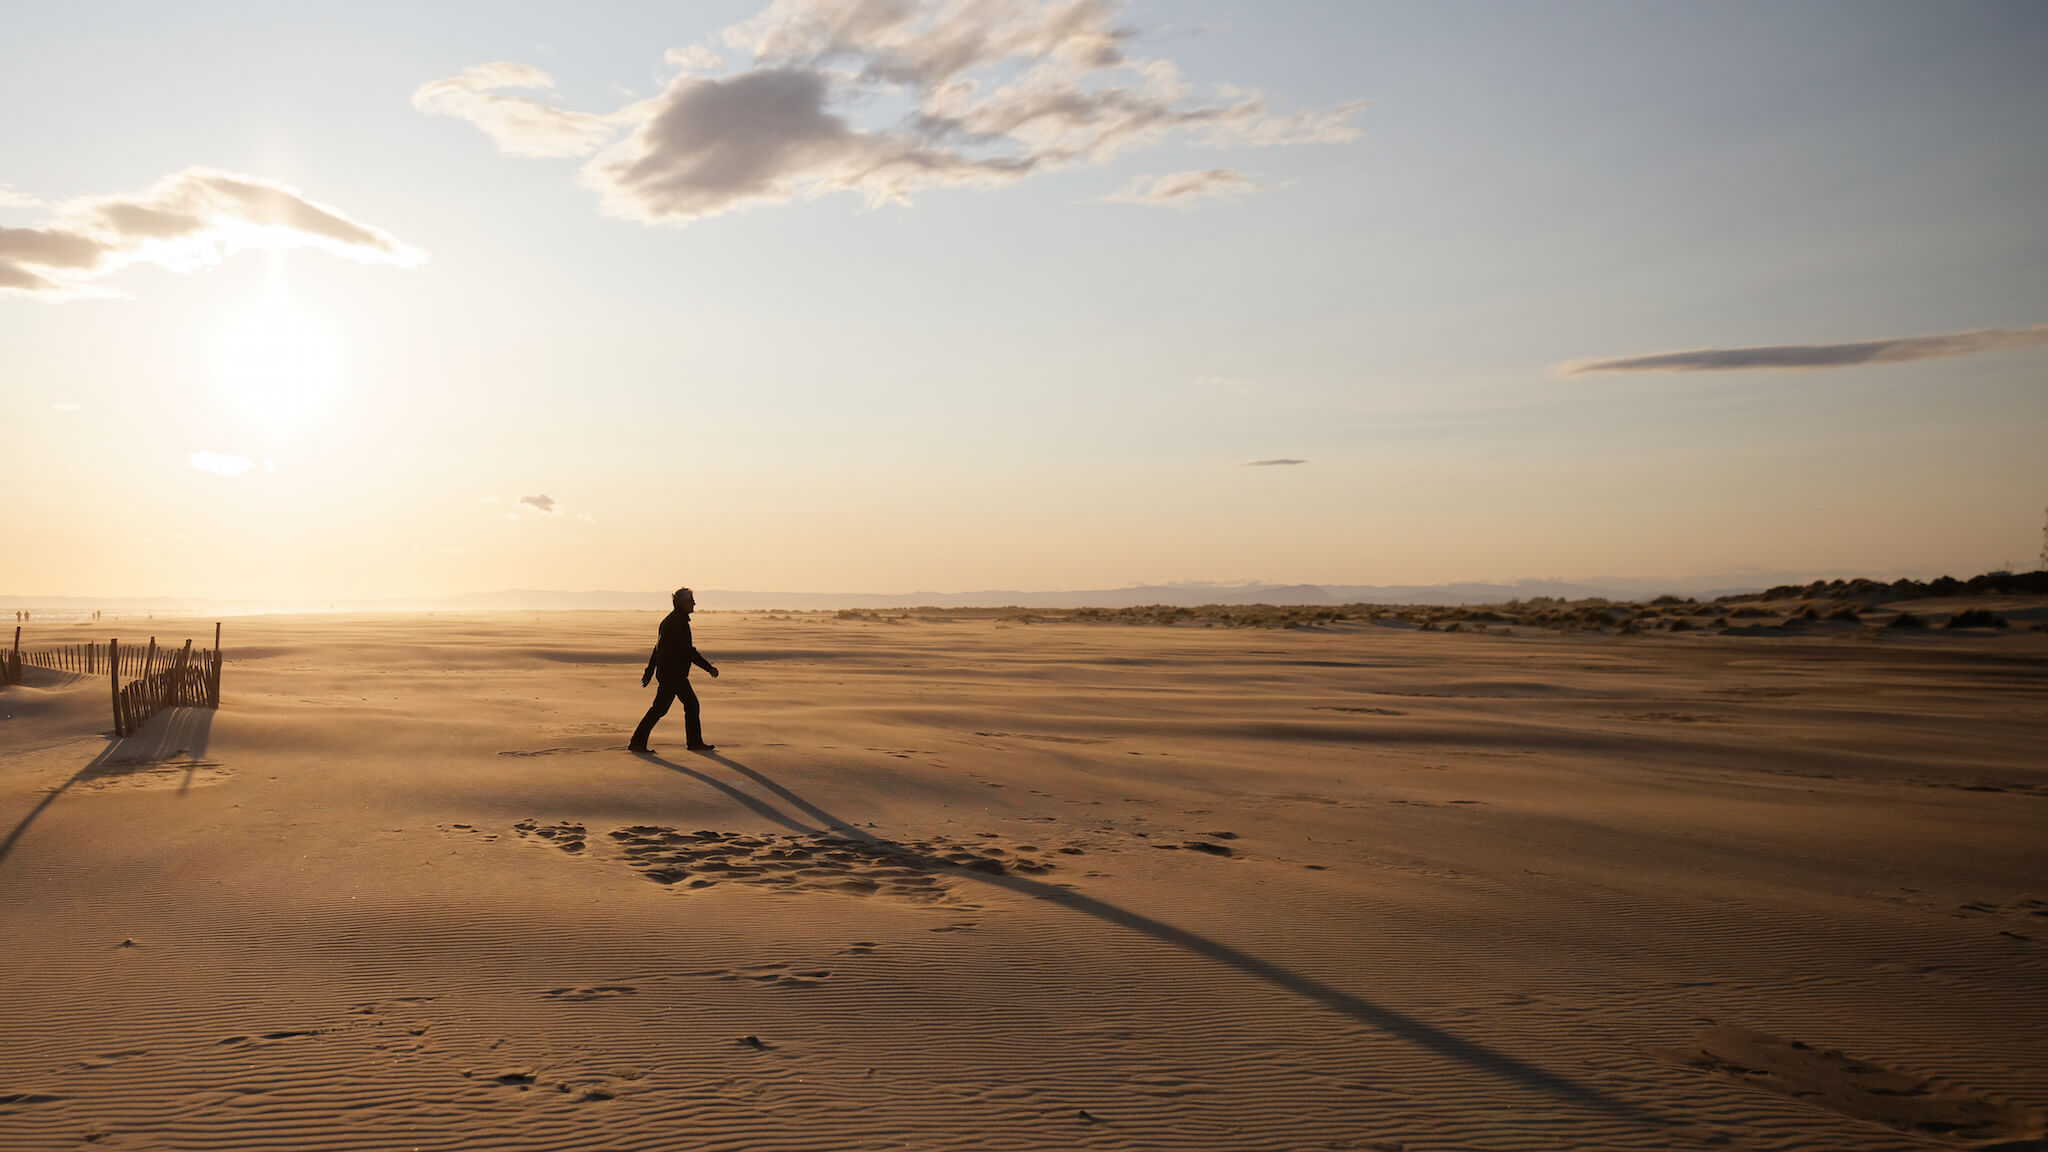 A person walks on the sandy beach of the Camargue at sunset, casting a shadow on the ground.